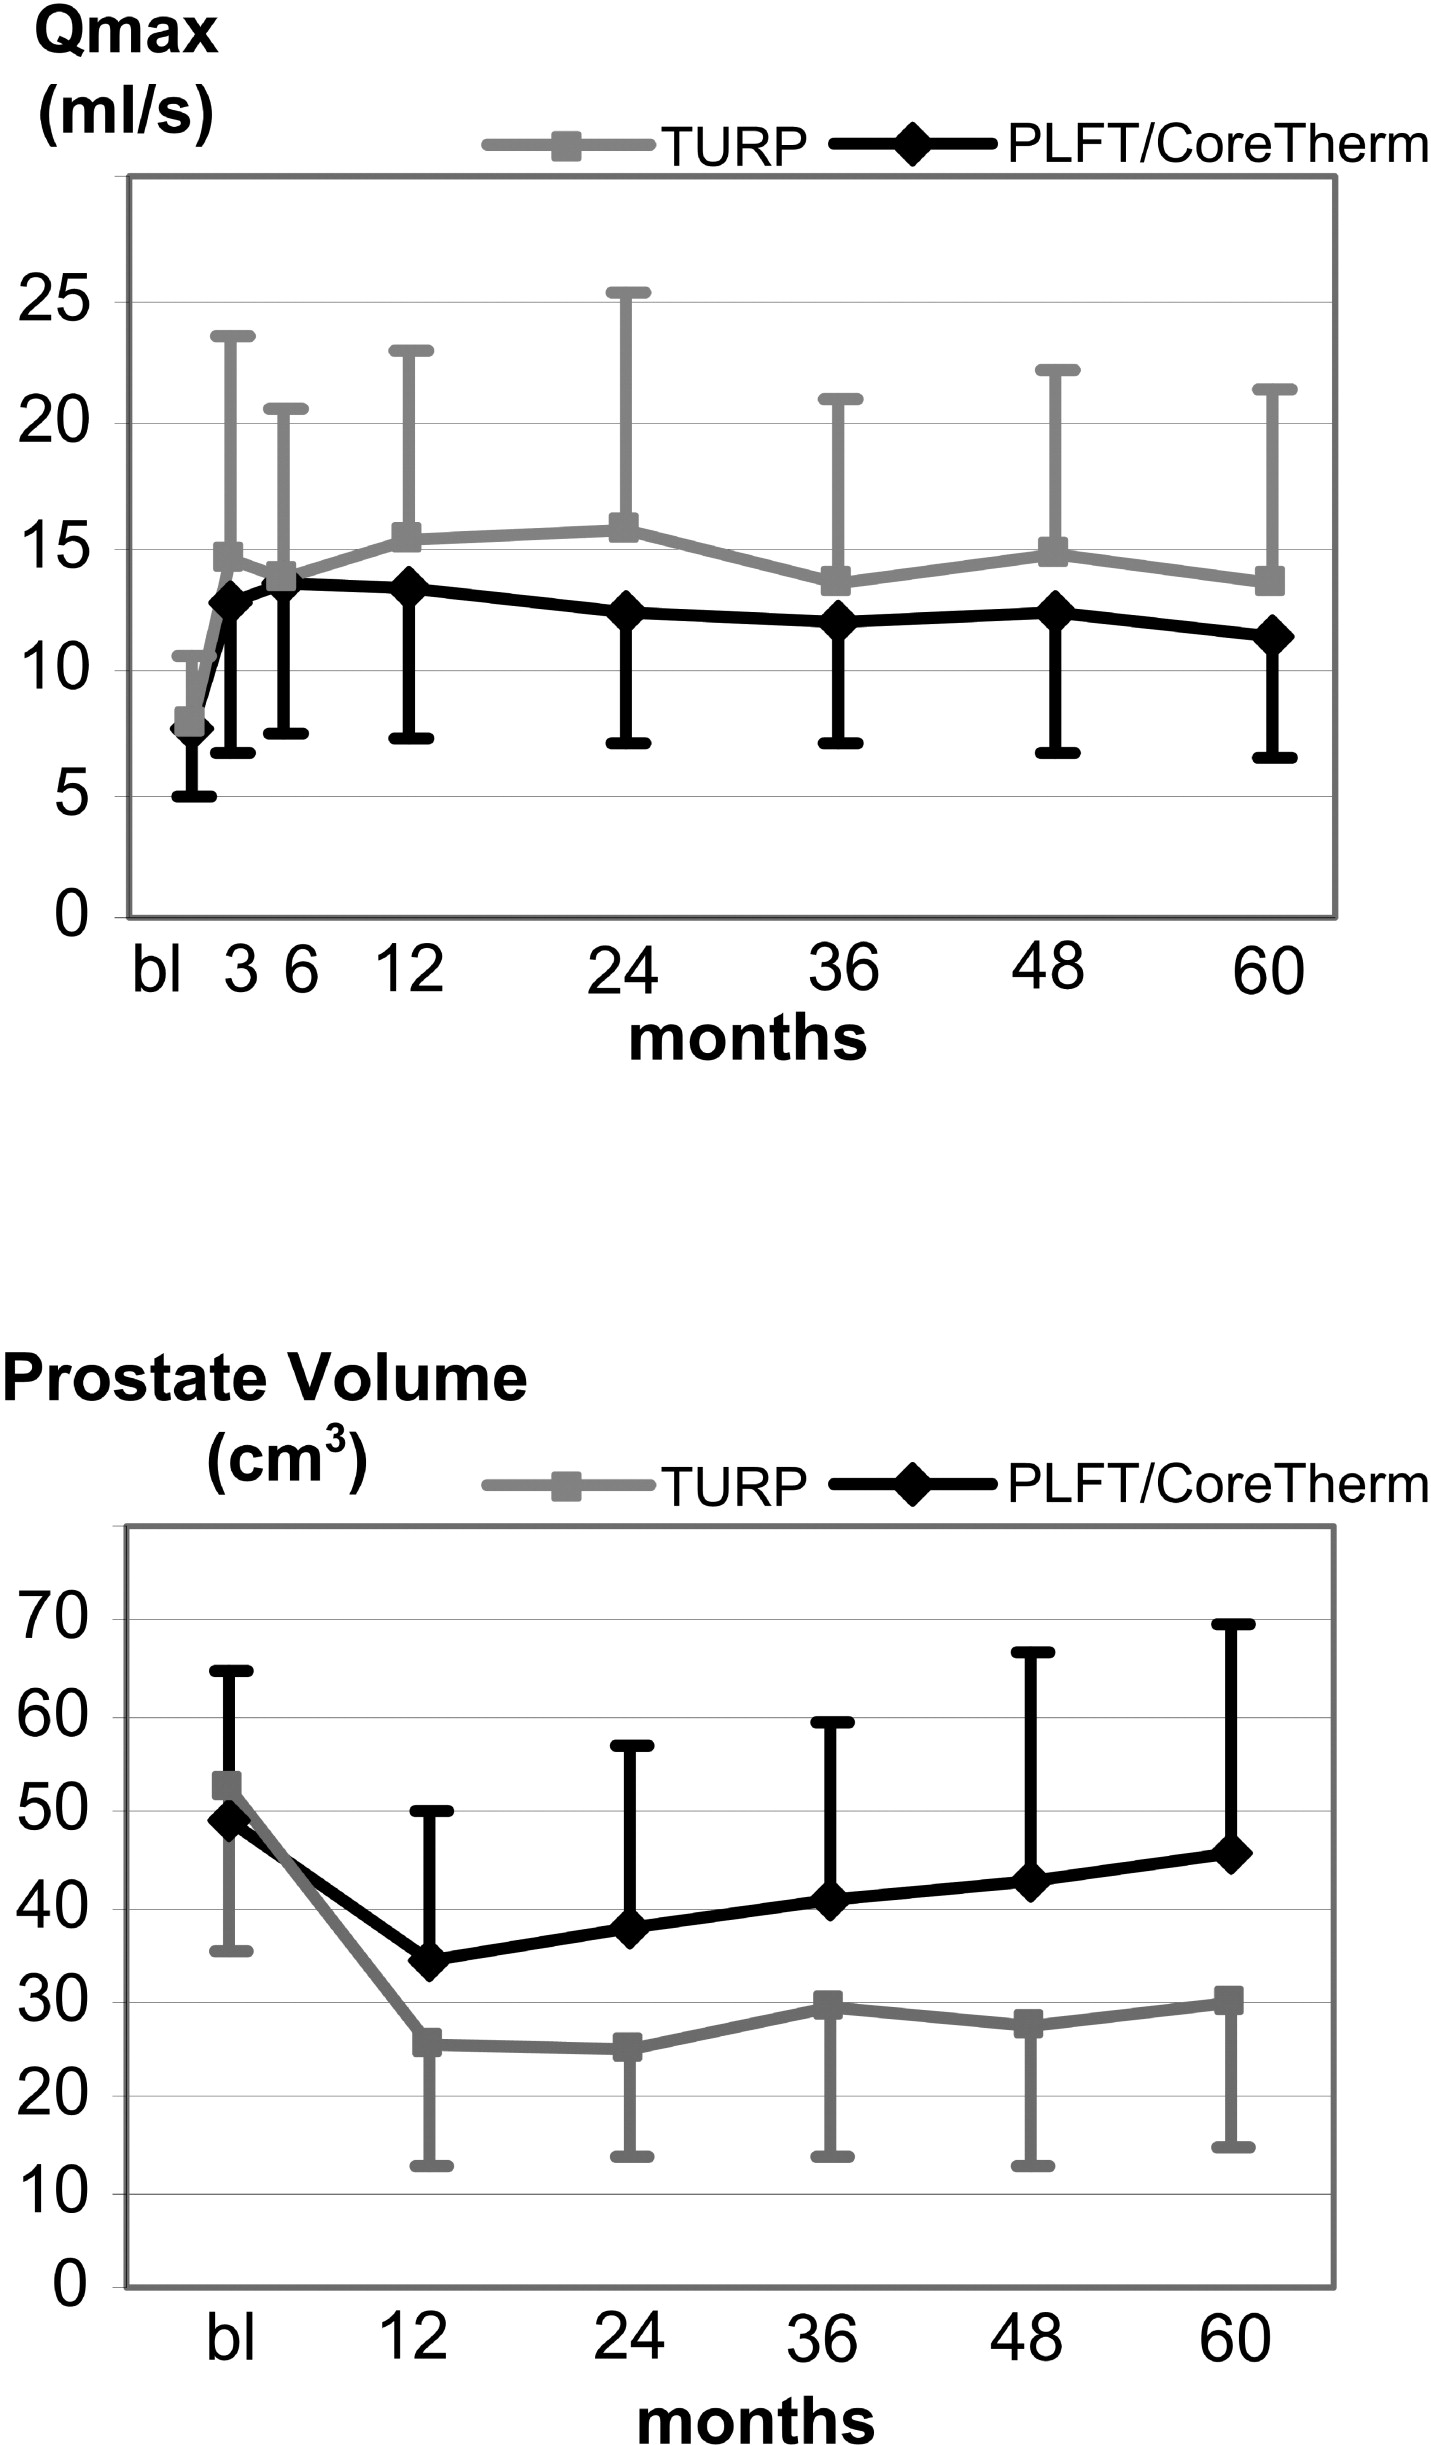 Five-Year Follow-up of Feedback Microwave Thermotherapy Versus TURP